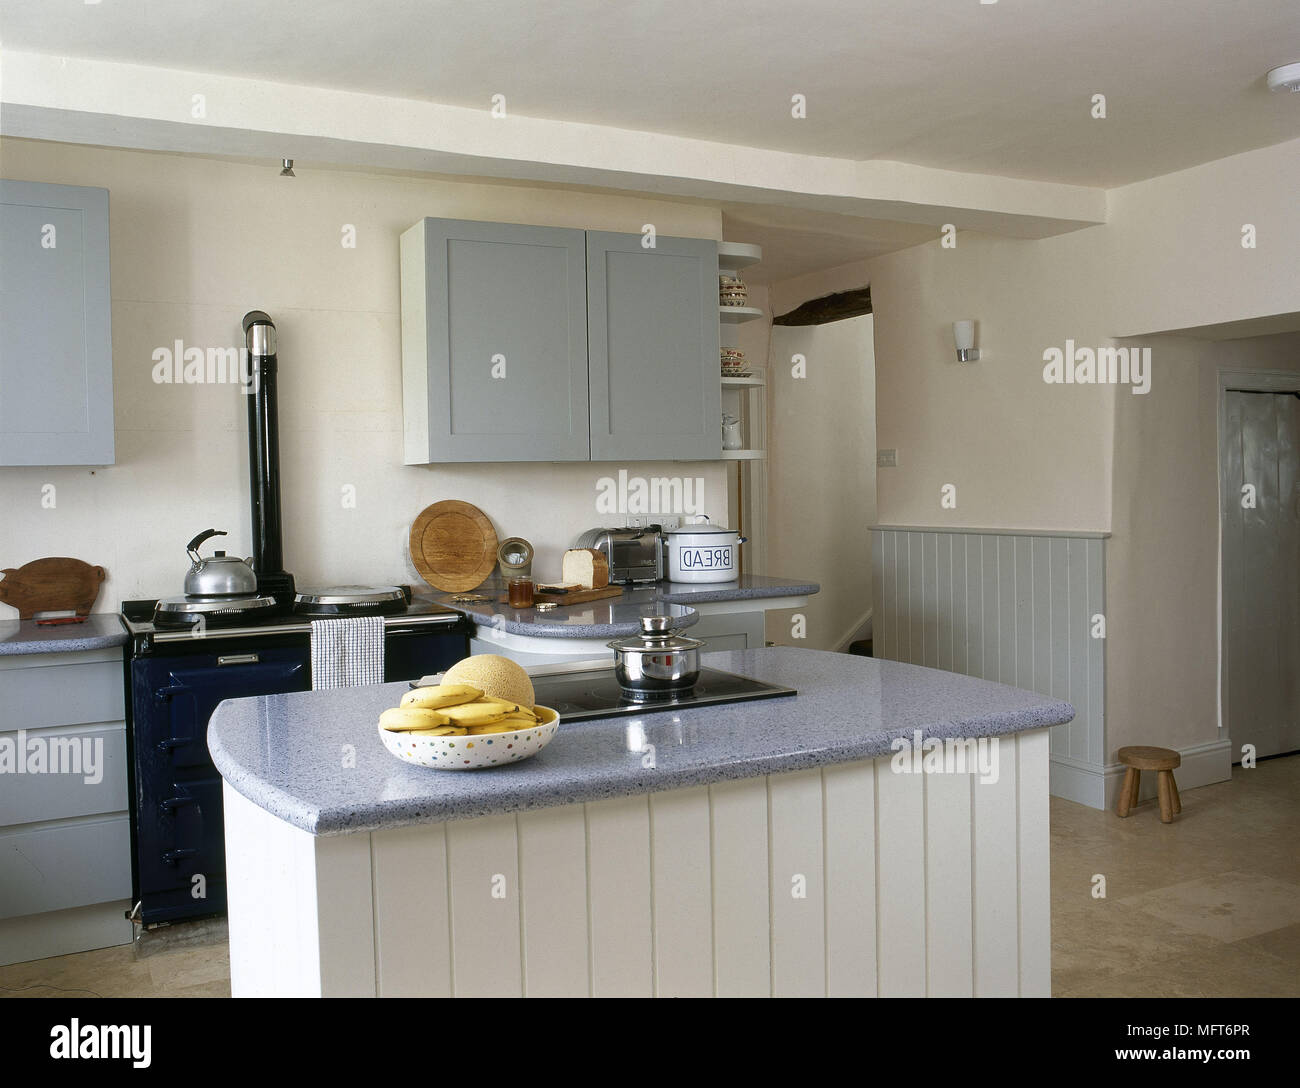 Kücheninsel Country Interiors Modern Kitchens Island Units Stock Photos Interiors